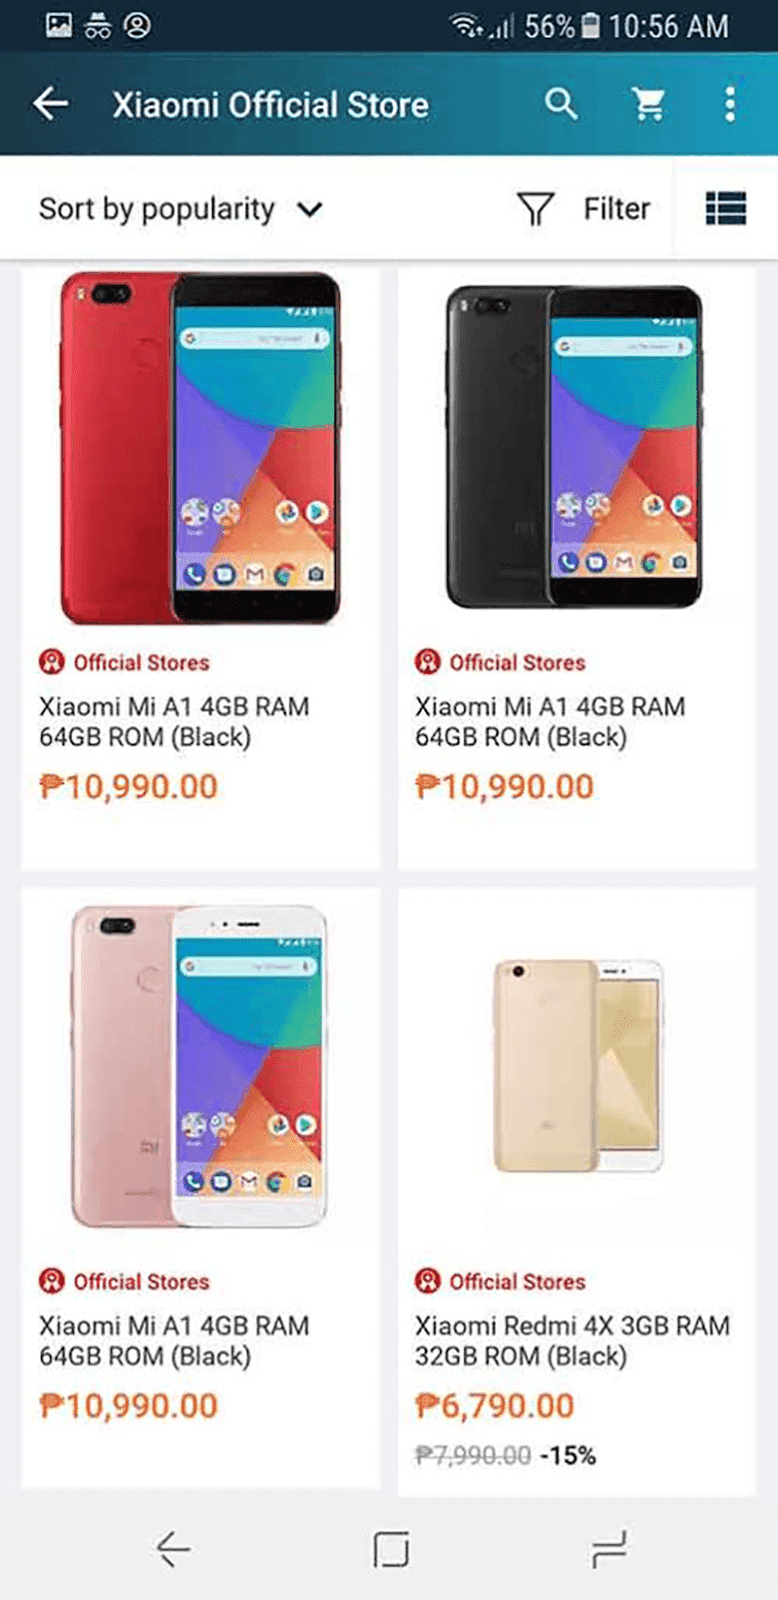 Here are the posted Mi devices at the moment